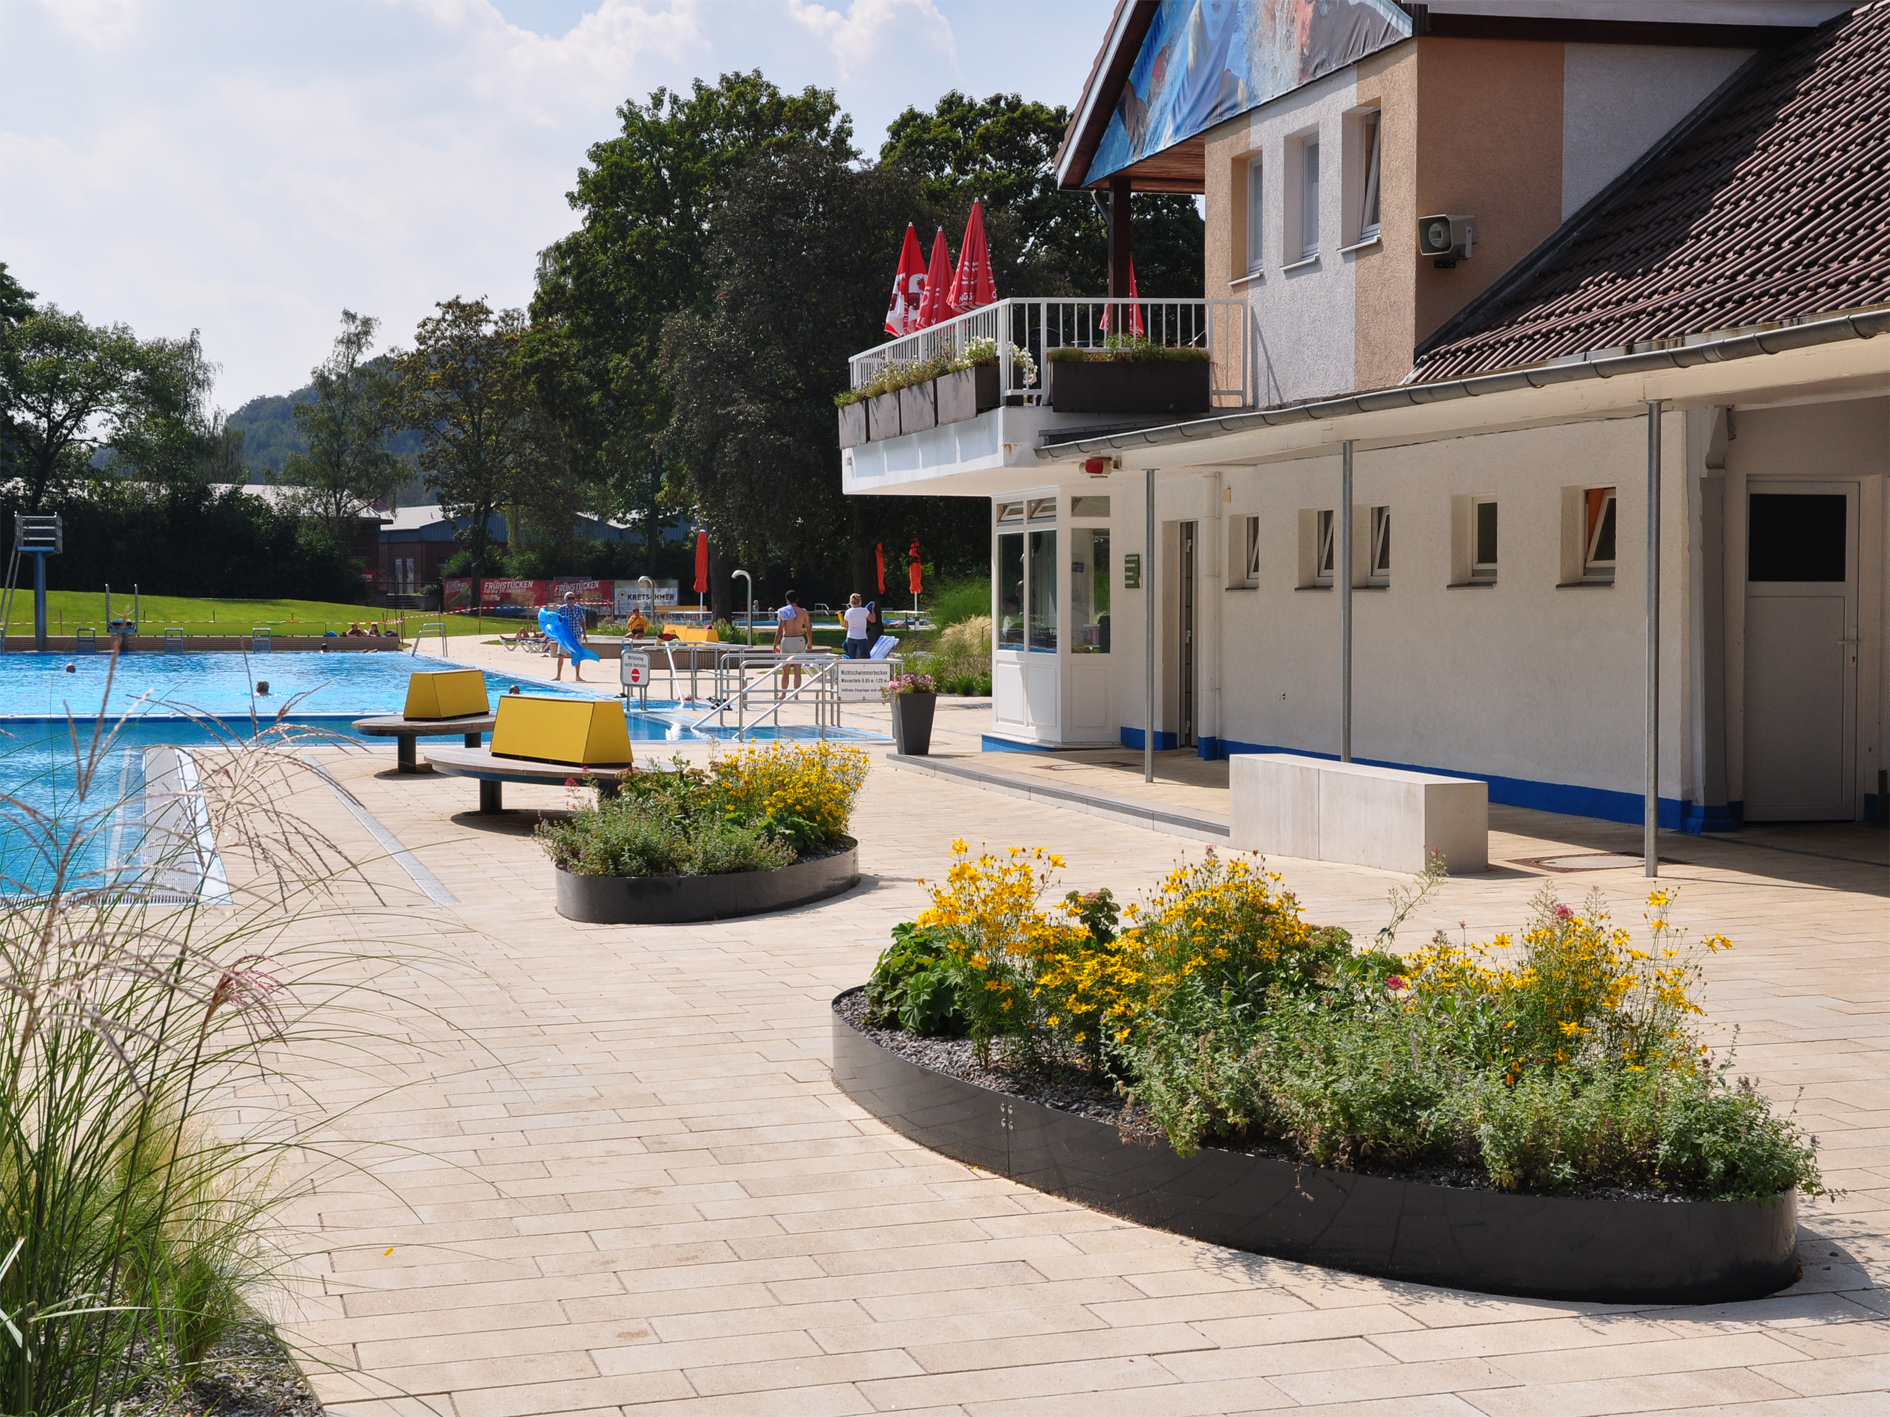 1511_Freibad_Bad_Salzdetfurth_1.jpg